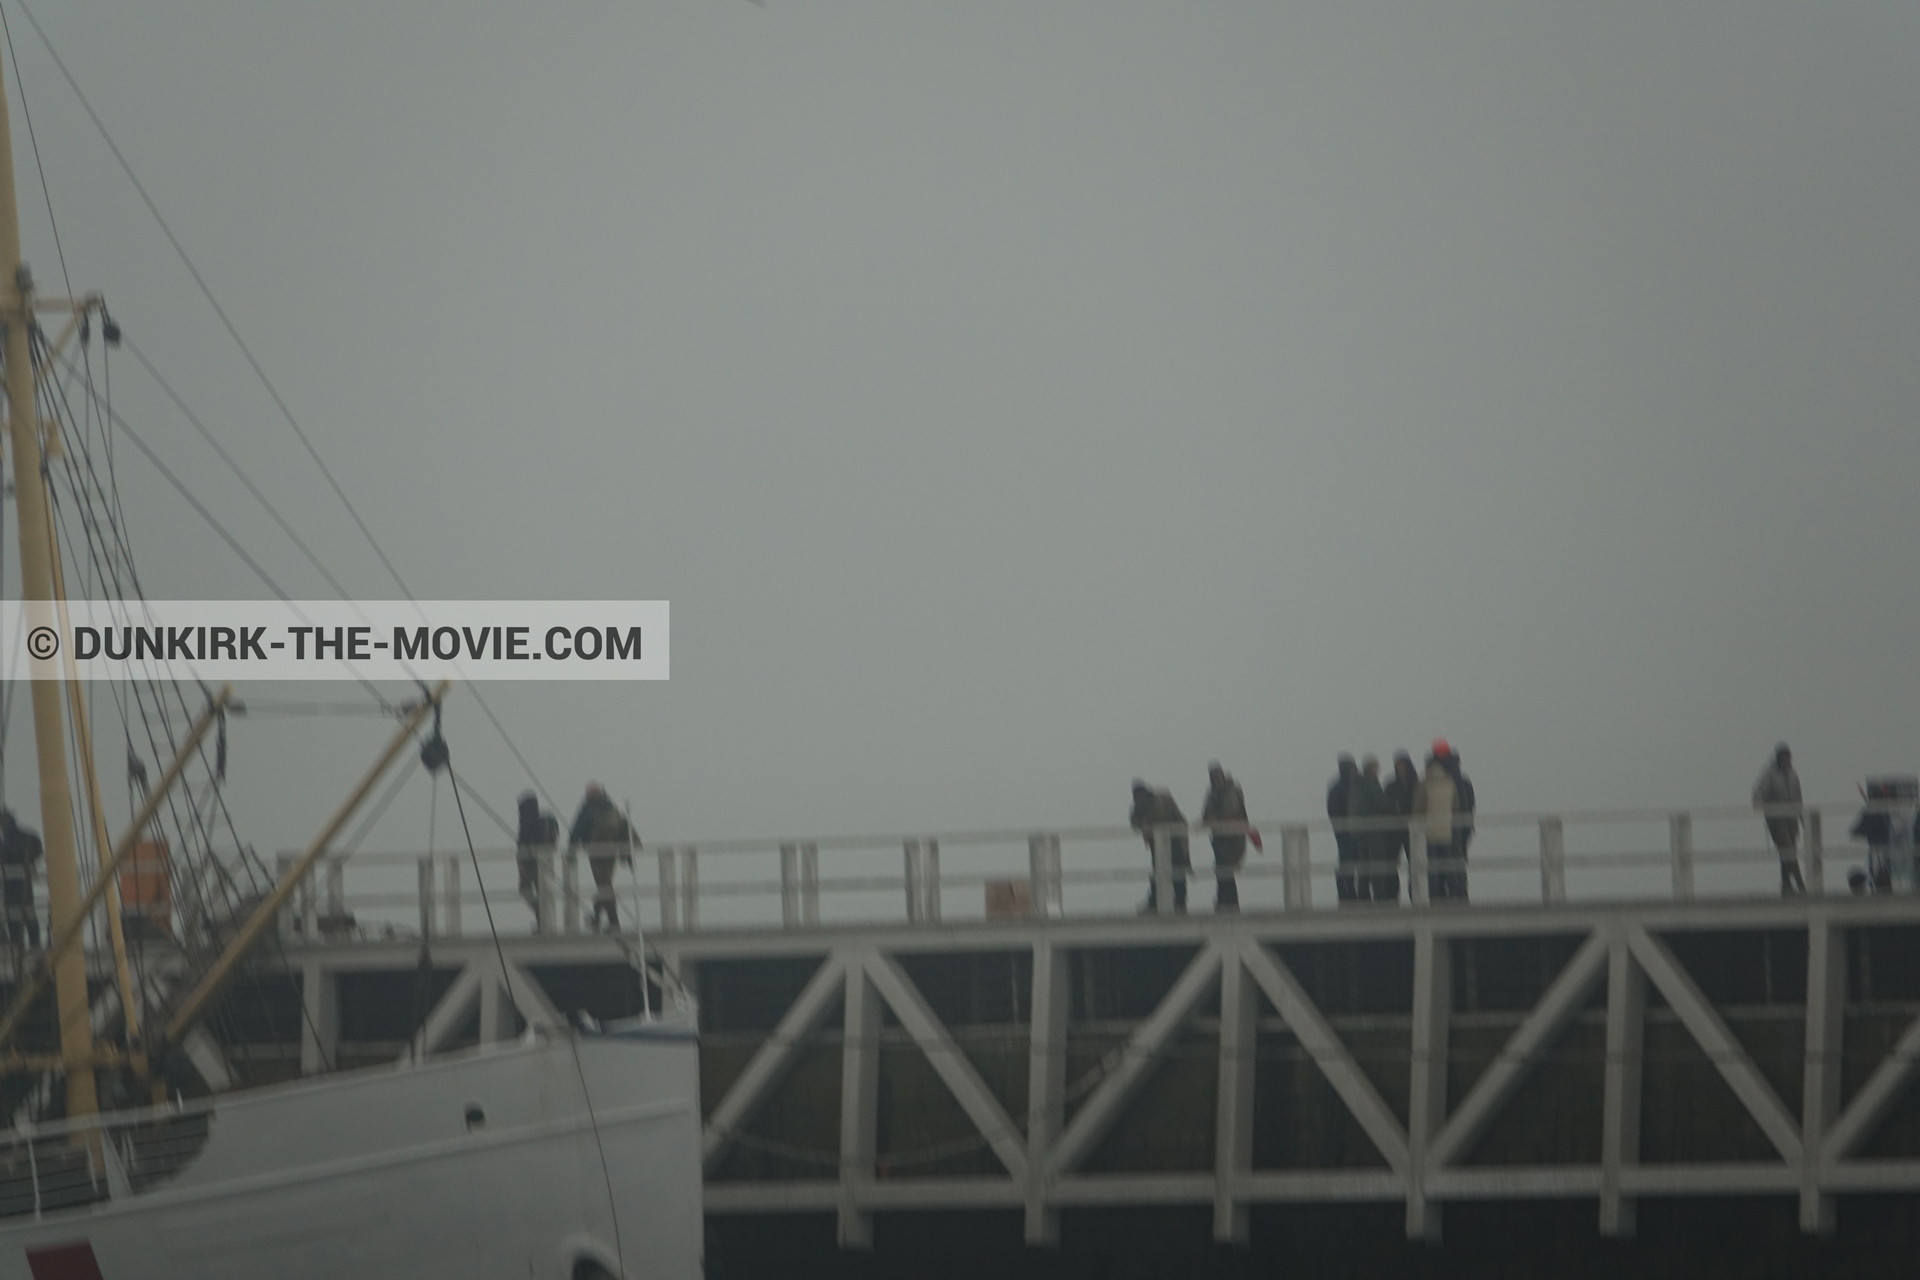 Picture with supernumeraries, EST pier, technical team, M/S Rogaland,  from behind the scene of the Dunkirk movie by Nolan